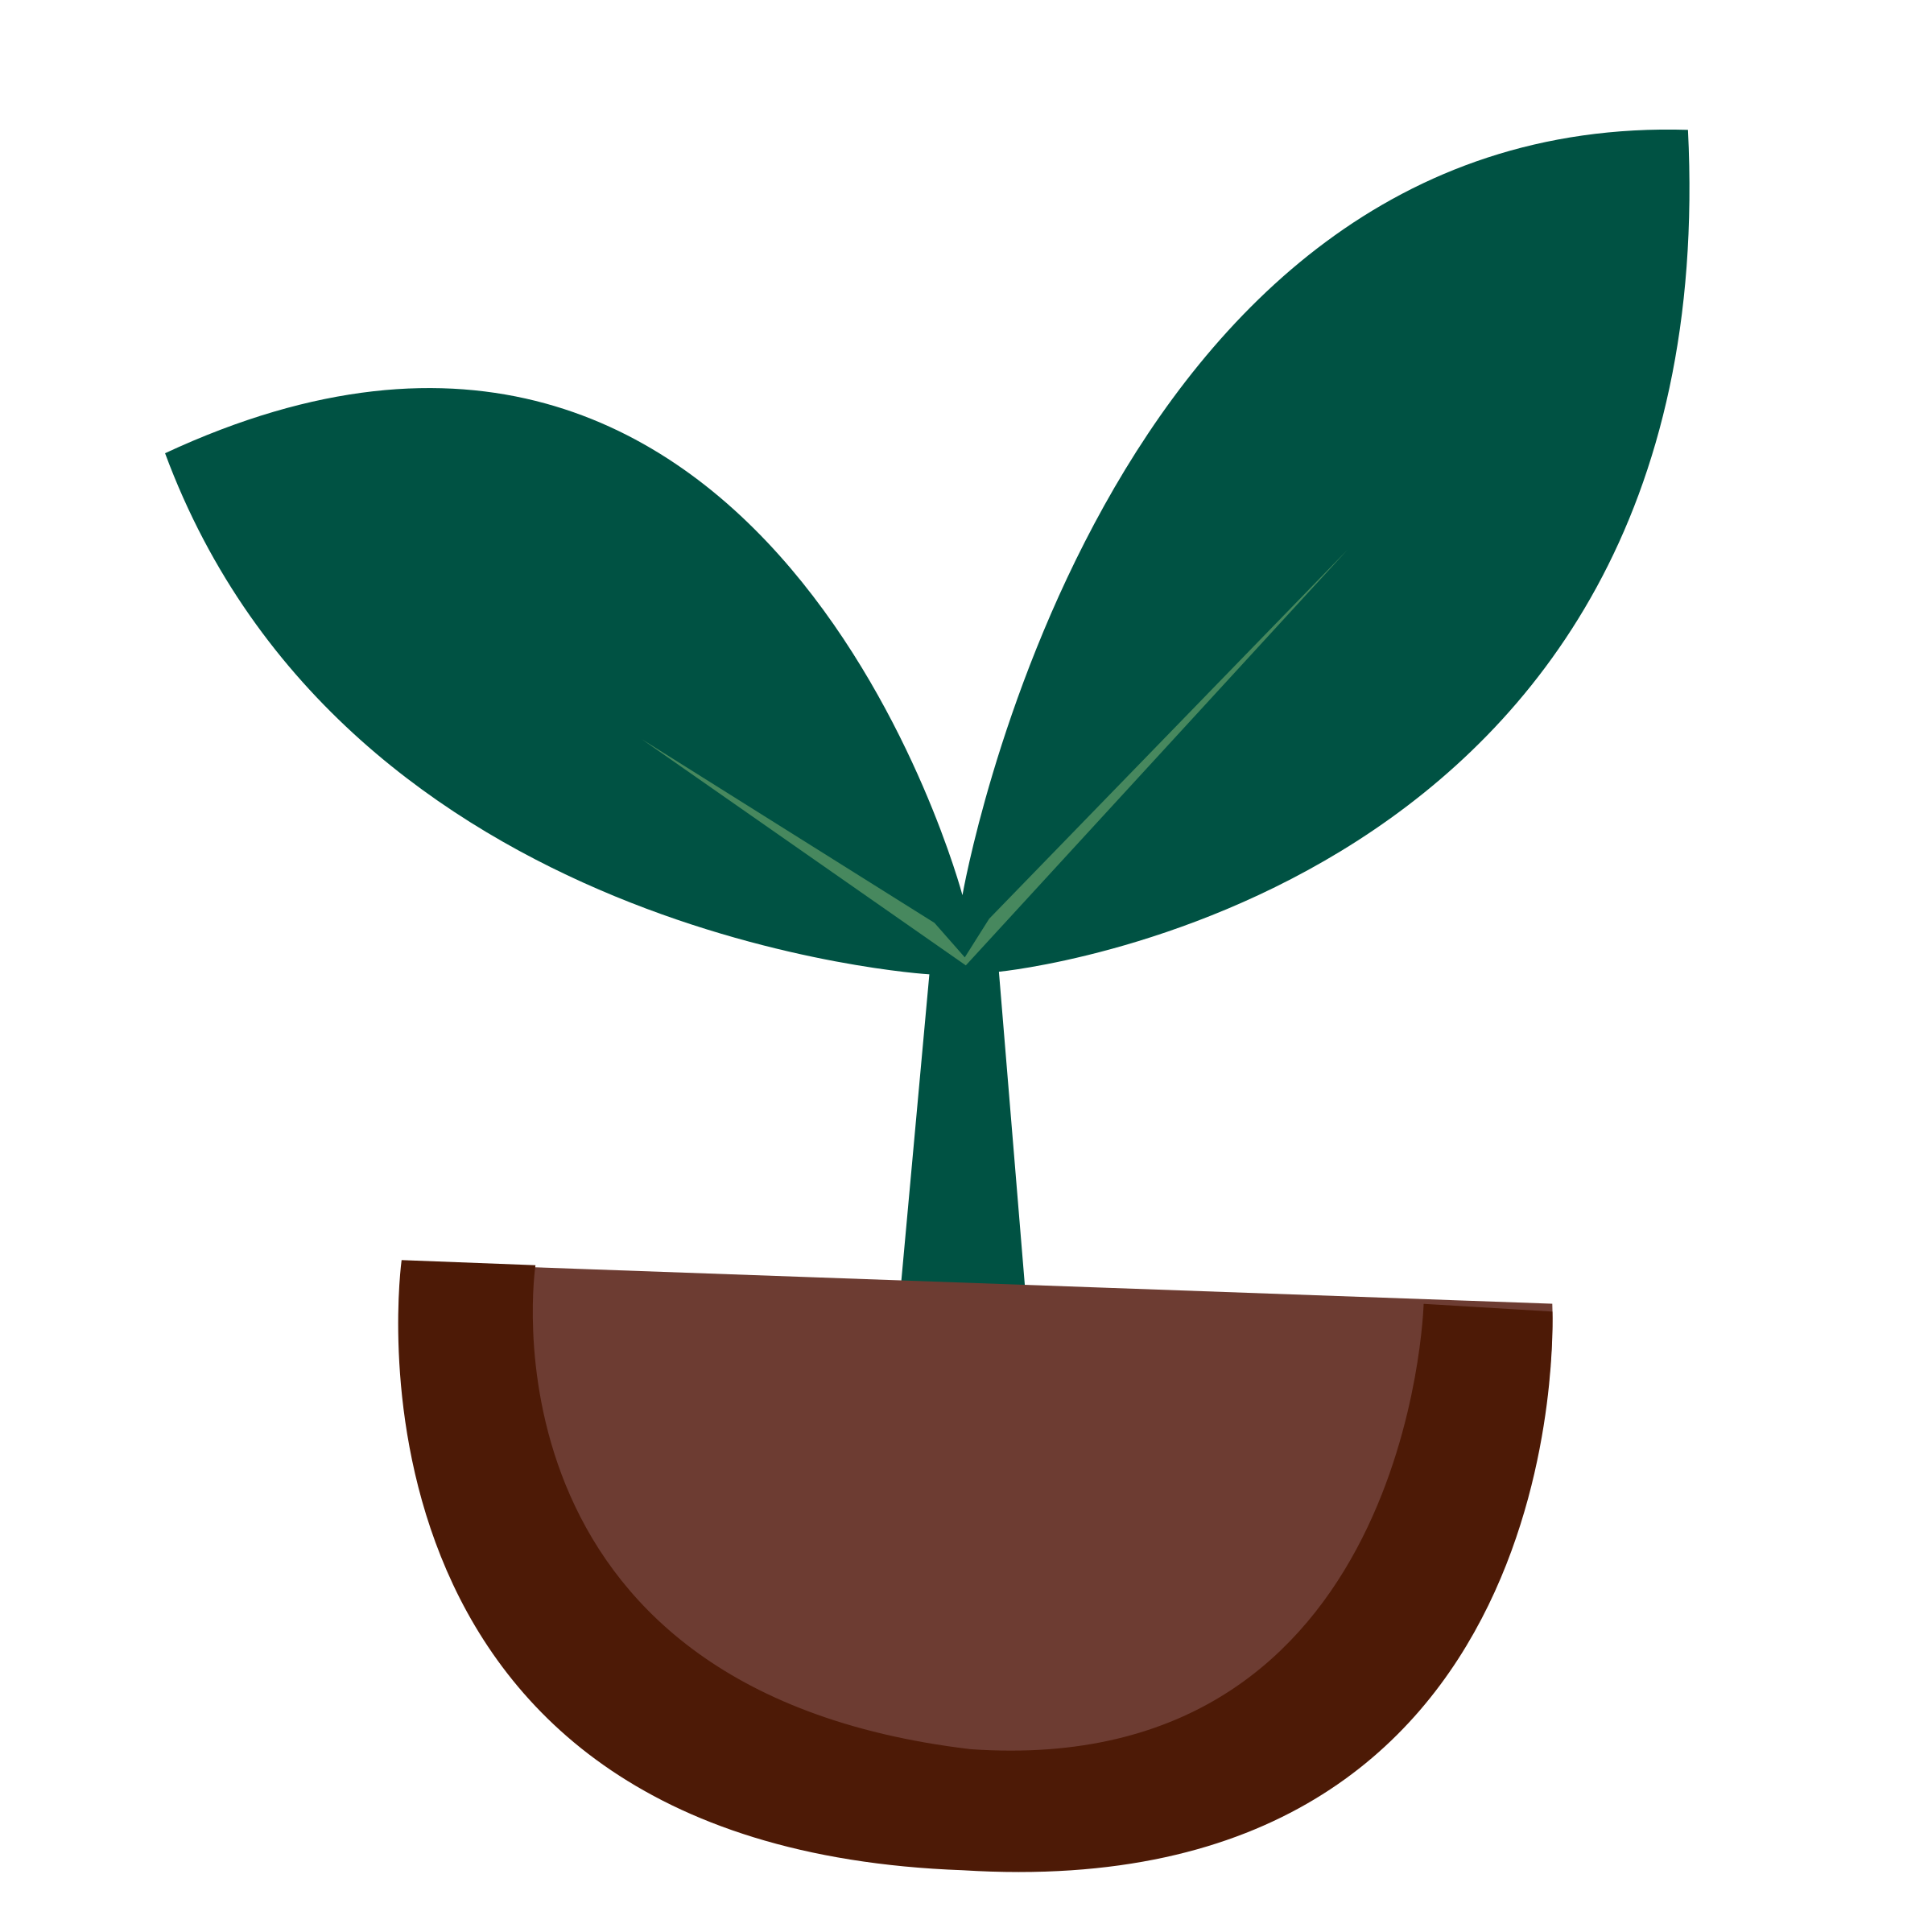 Tomato Plant Clipart. BIG IMAGE (PNG)